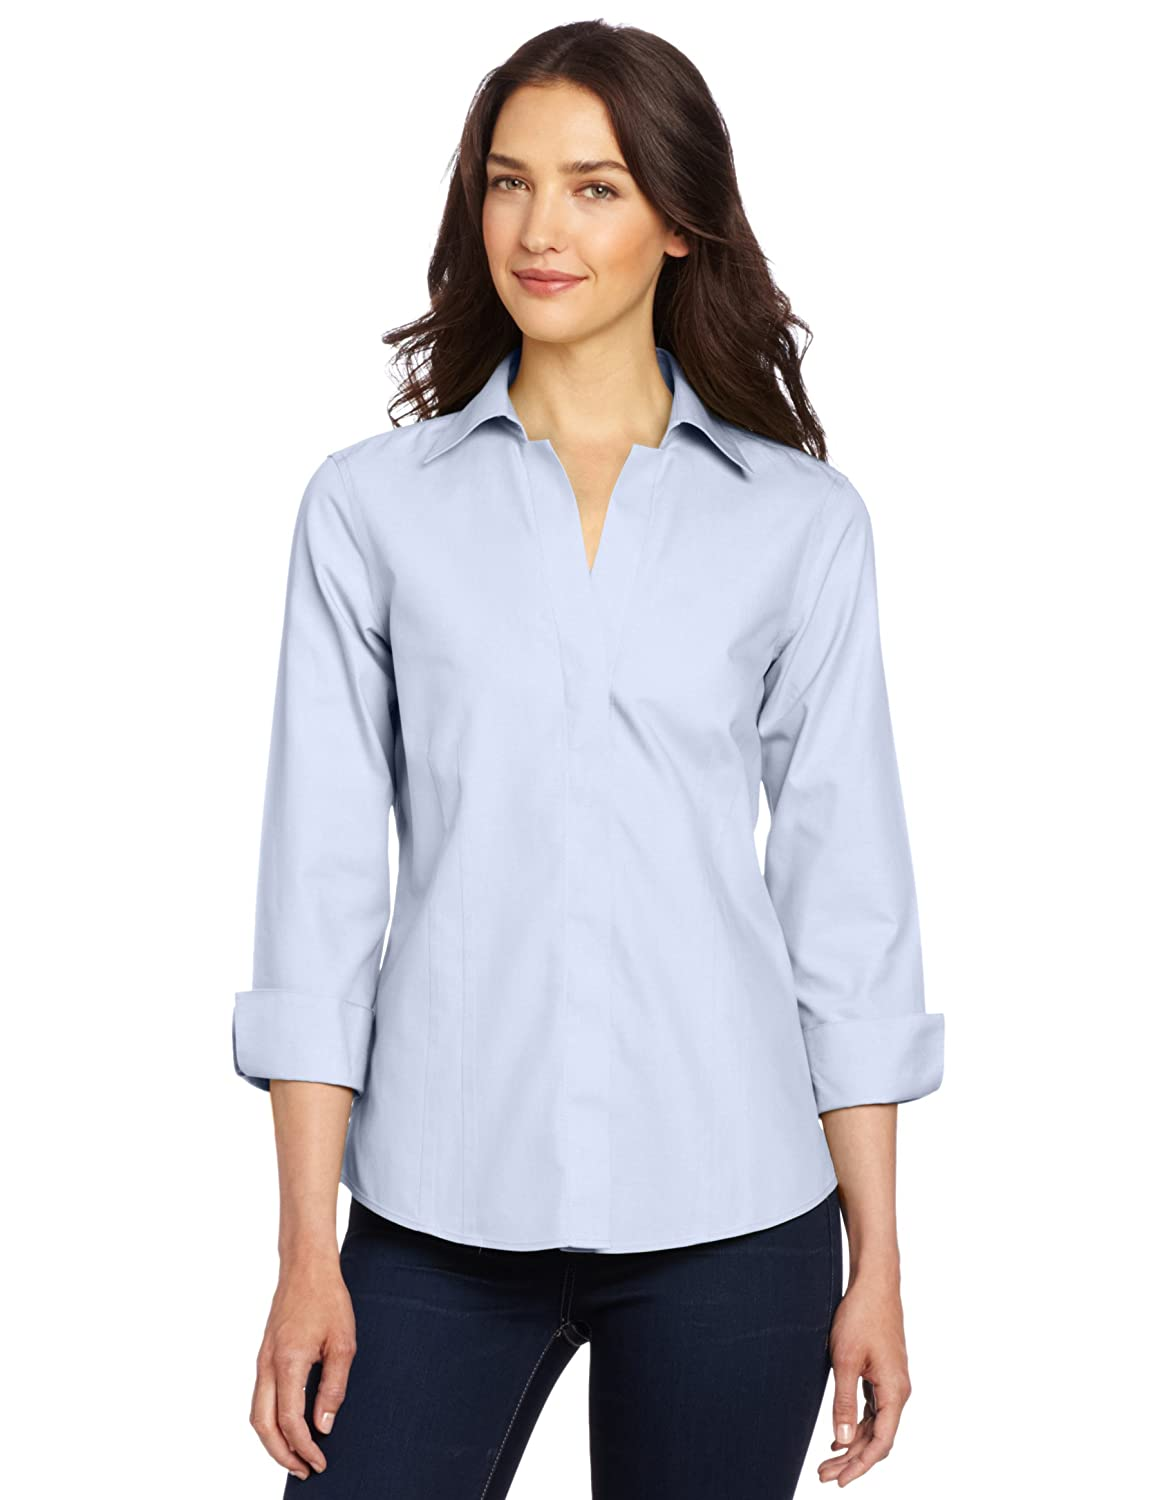 Foxcroft Women's Taylor Essential Non-Iron Blouse at Amazon ...